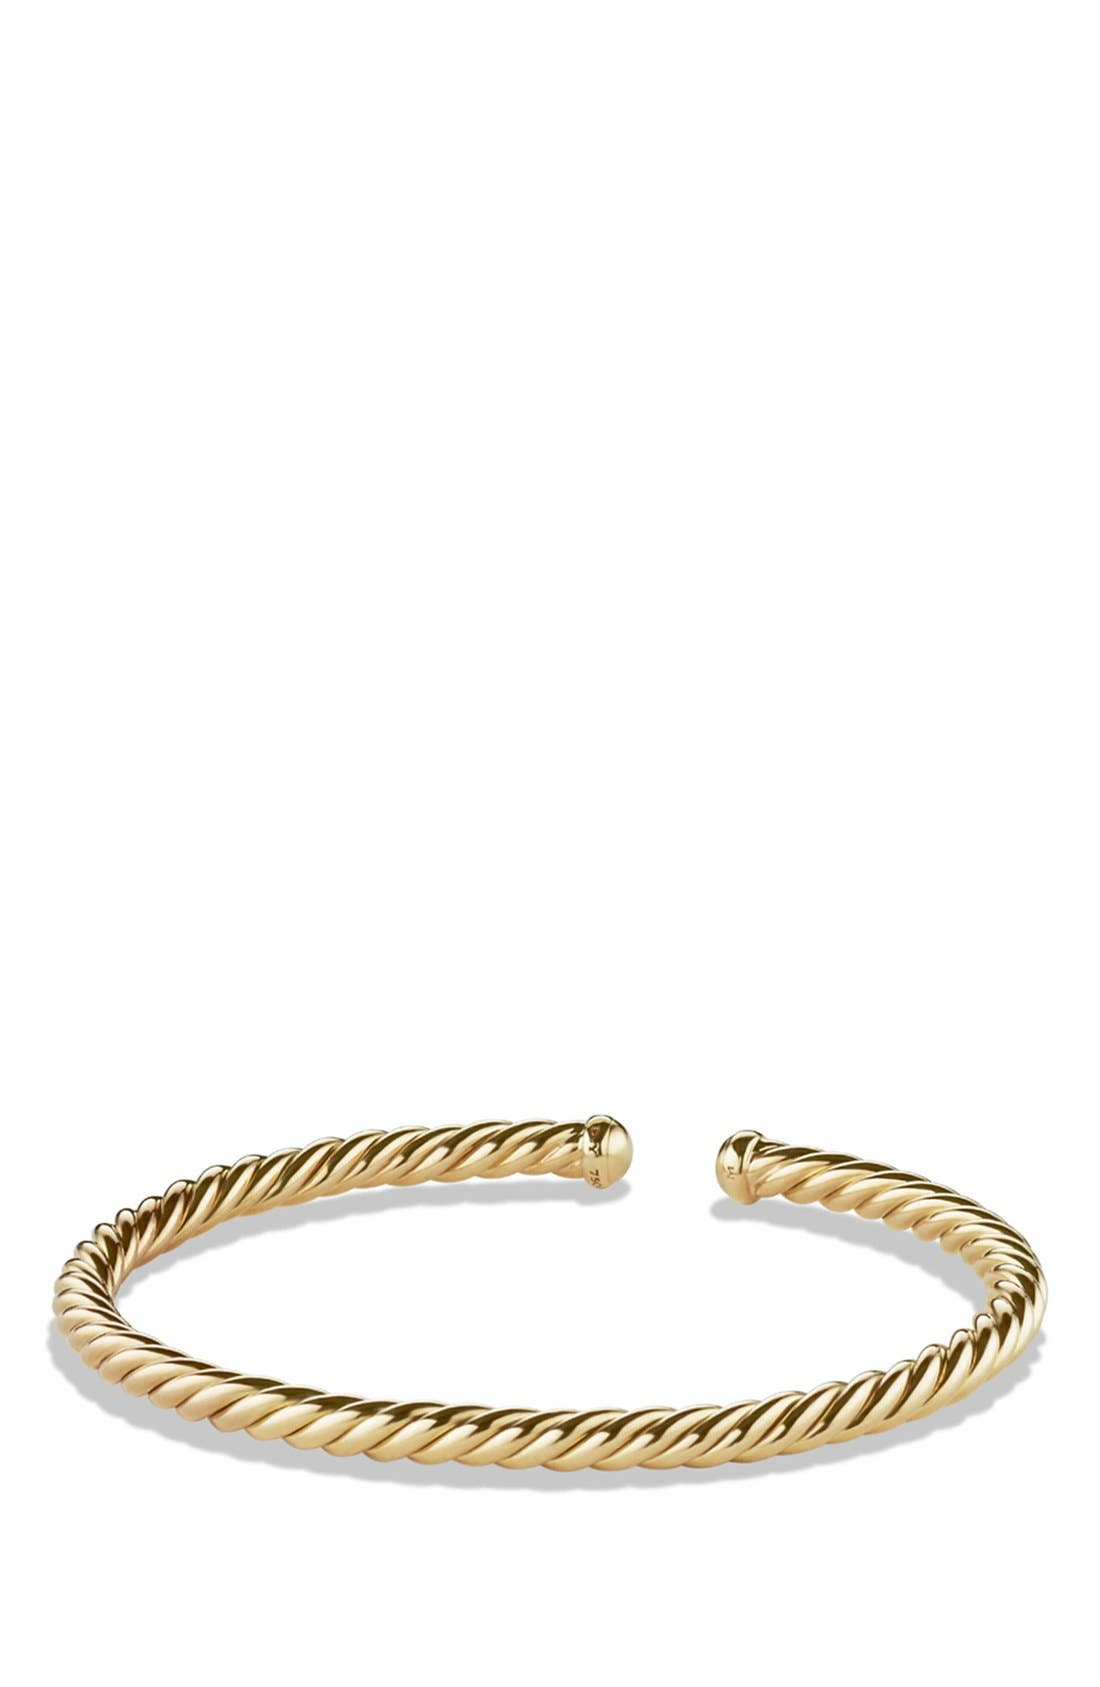 David Yurman 'Cable' Precious Bracelet in Gold